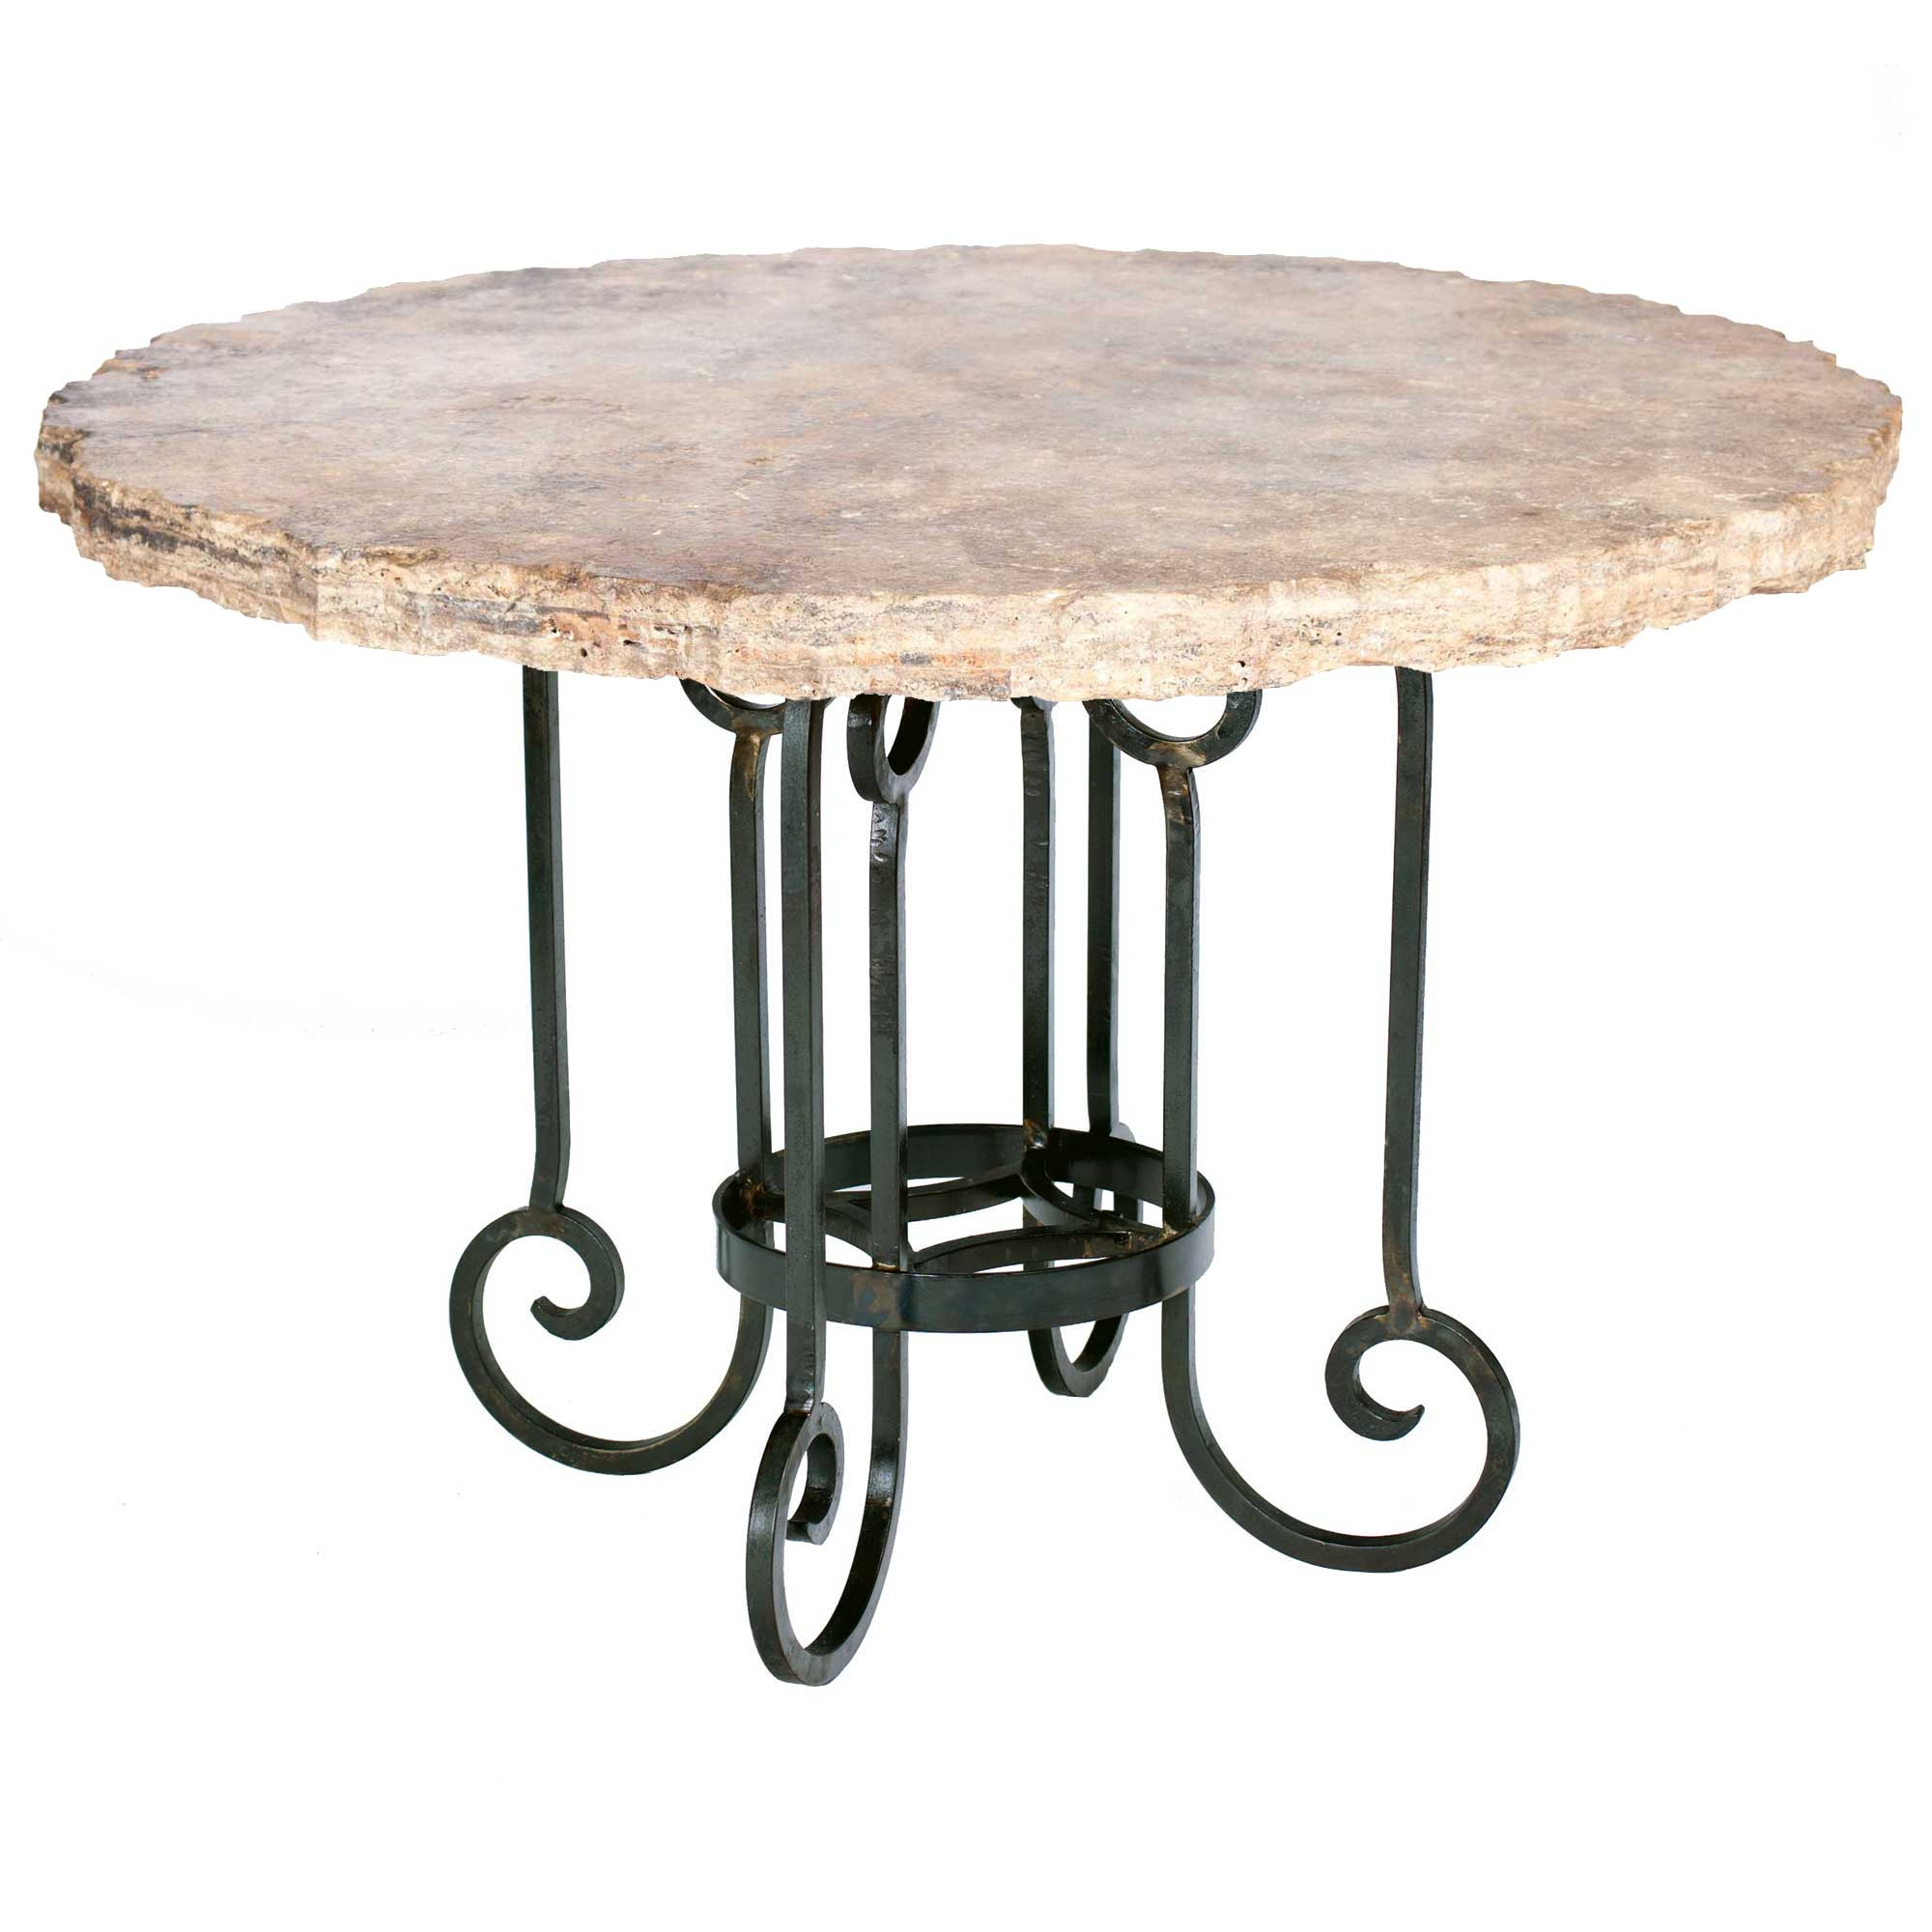 Wrought Iron Round Table.Curled Leg Iron Dining Table With 60 Round Marble Top